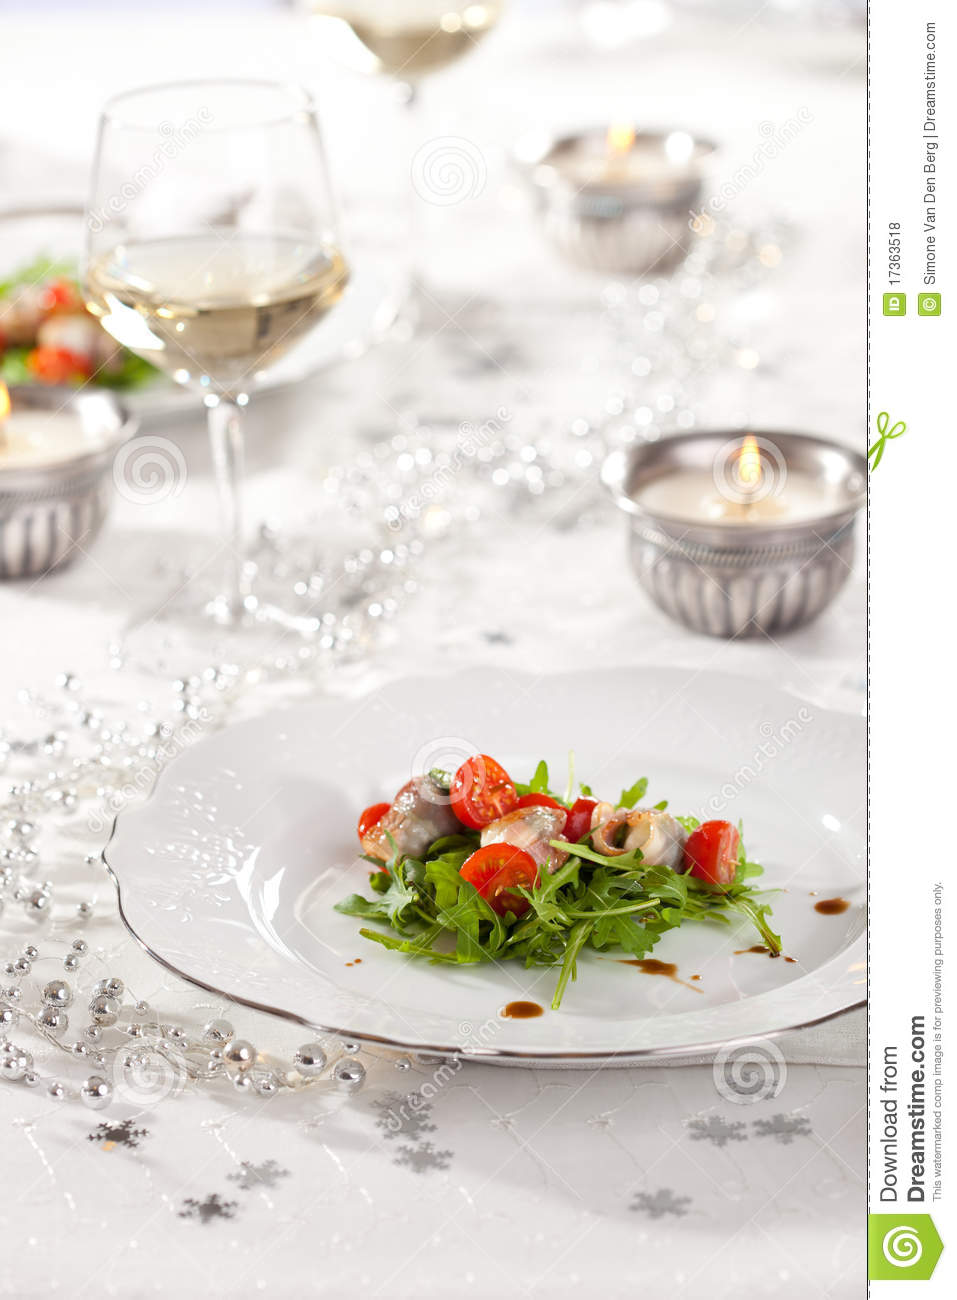 Festive table stock photo. Image of holiday, table ...